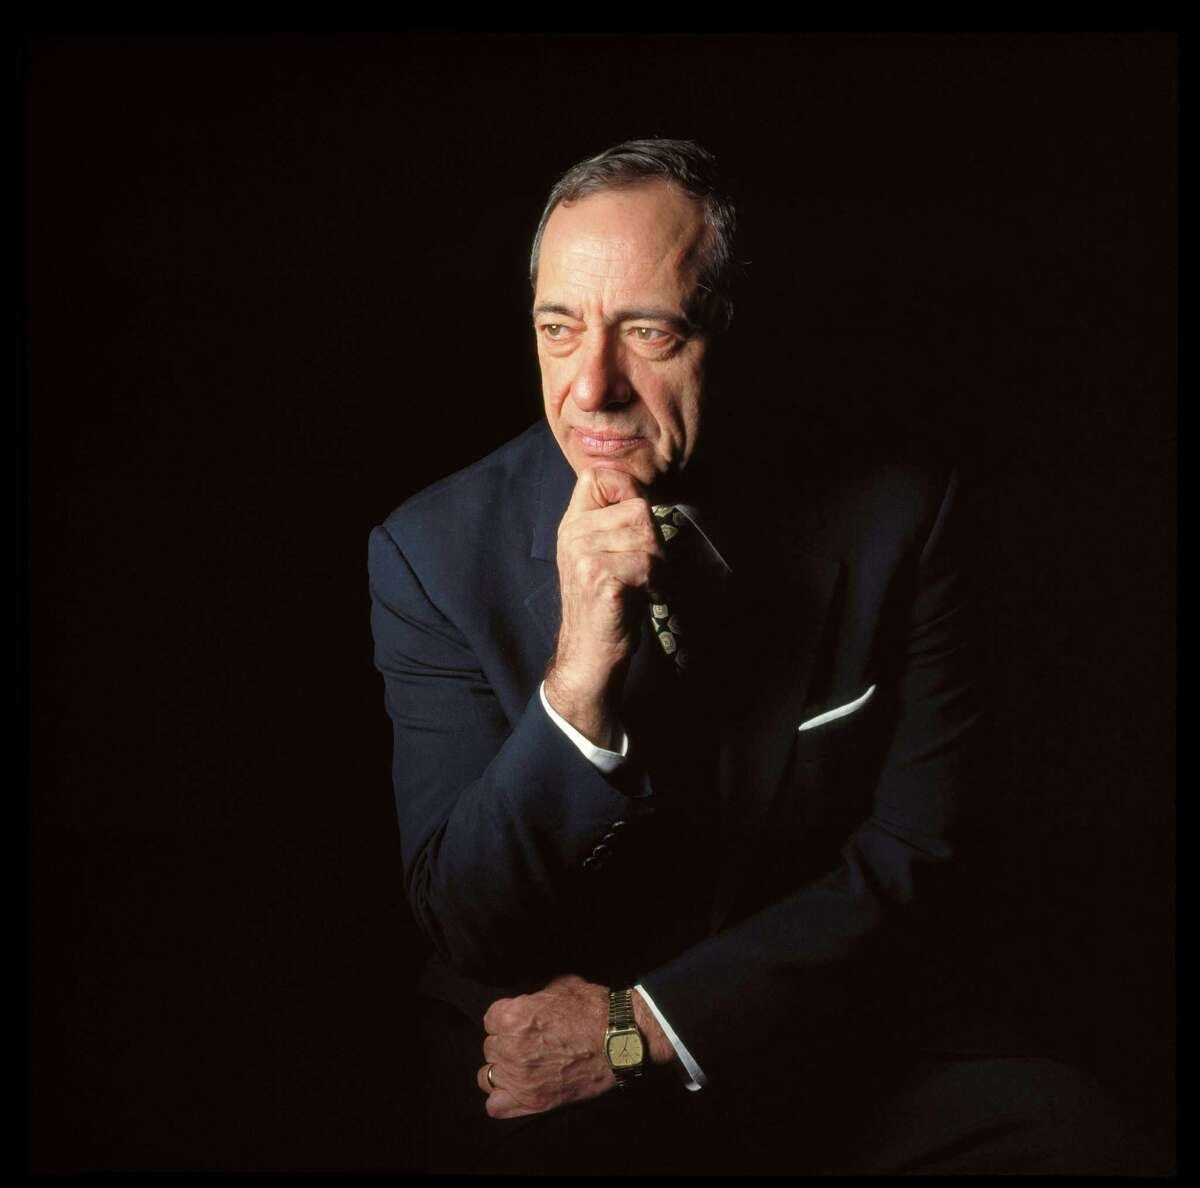 FILE -- Mario Cuomo, the three-term Democratic governor of New York, in 1995. Cuomo, who commanded the attention of the country with a compelling public presence and a forceful defense of liberalism, died at home in Manhattan on Jan. 1, 2015. He was 82. (Fred R. Conrad/The New York Times) ORG XMIT: XNYT132